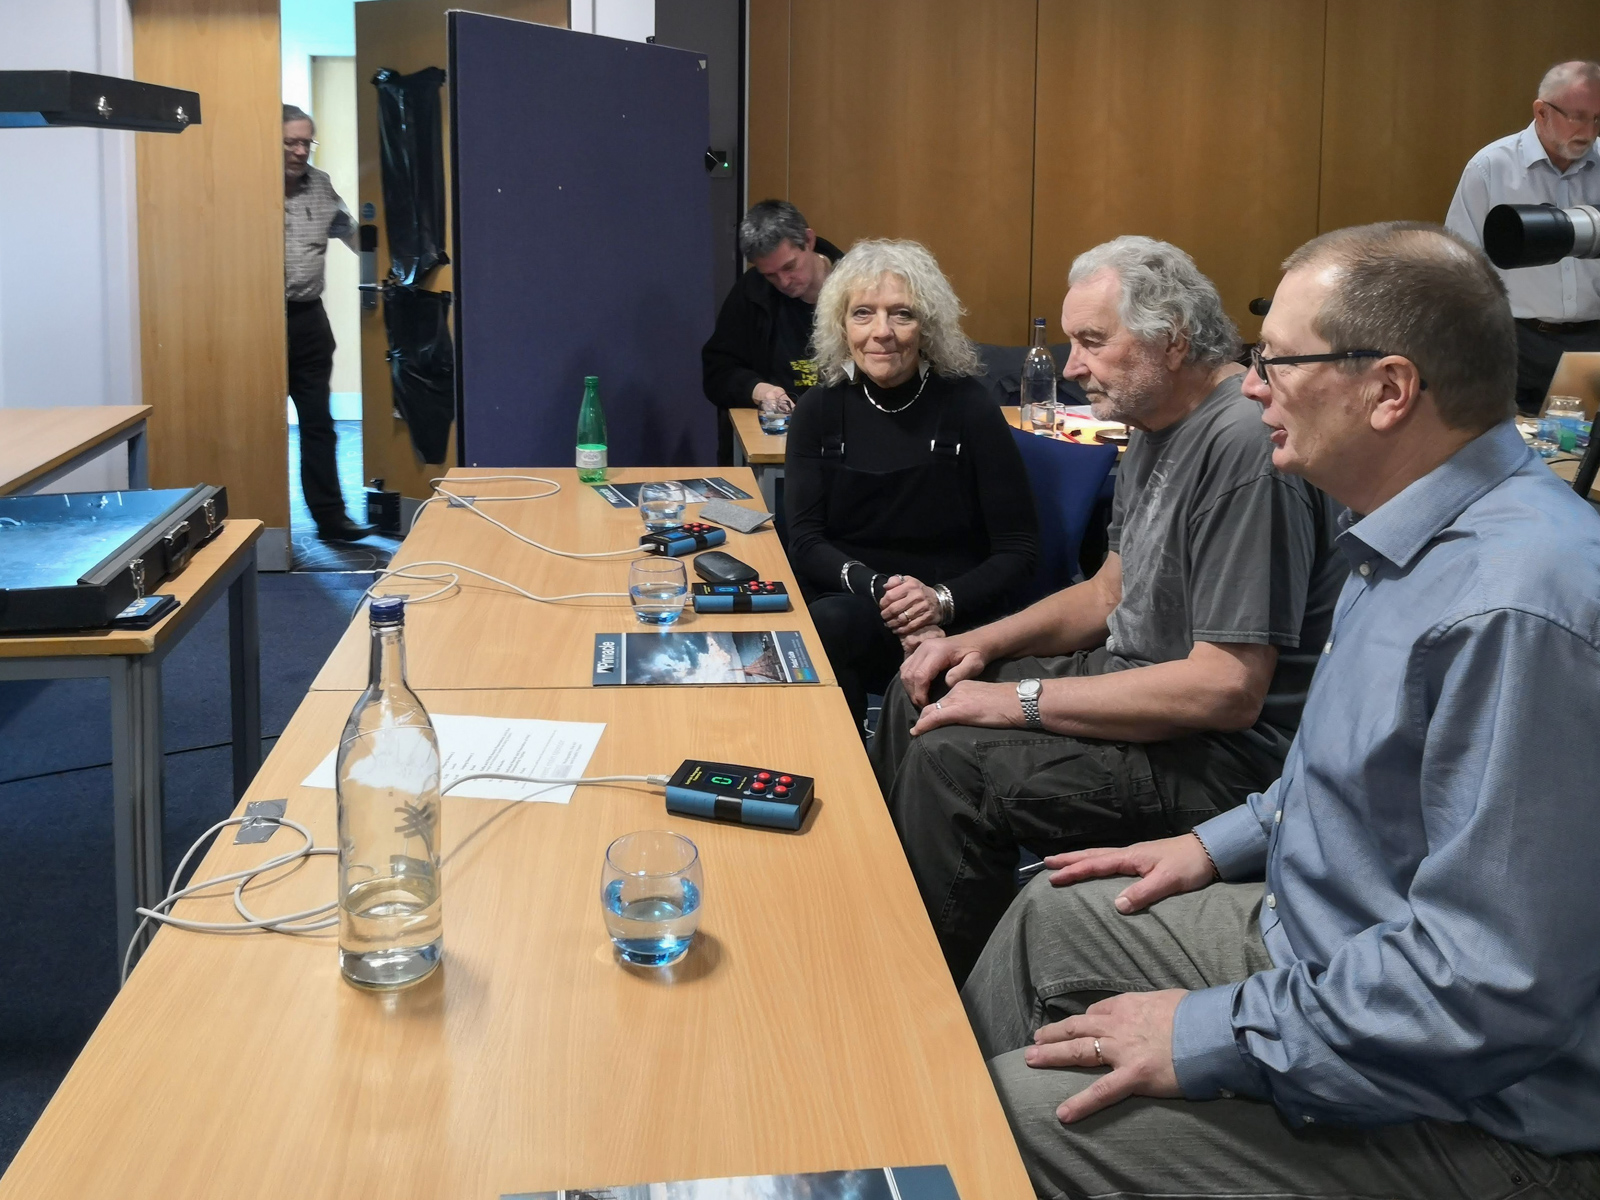 Judges at their desk, with scoring devices at the ready